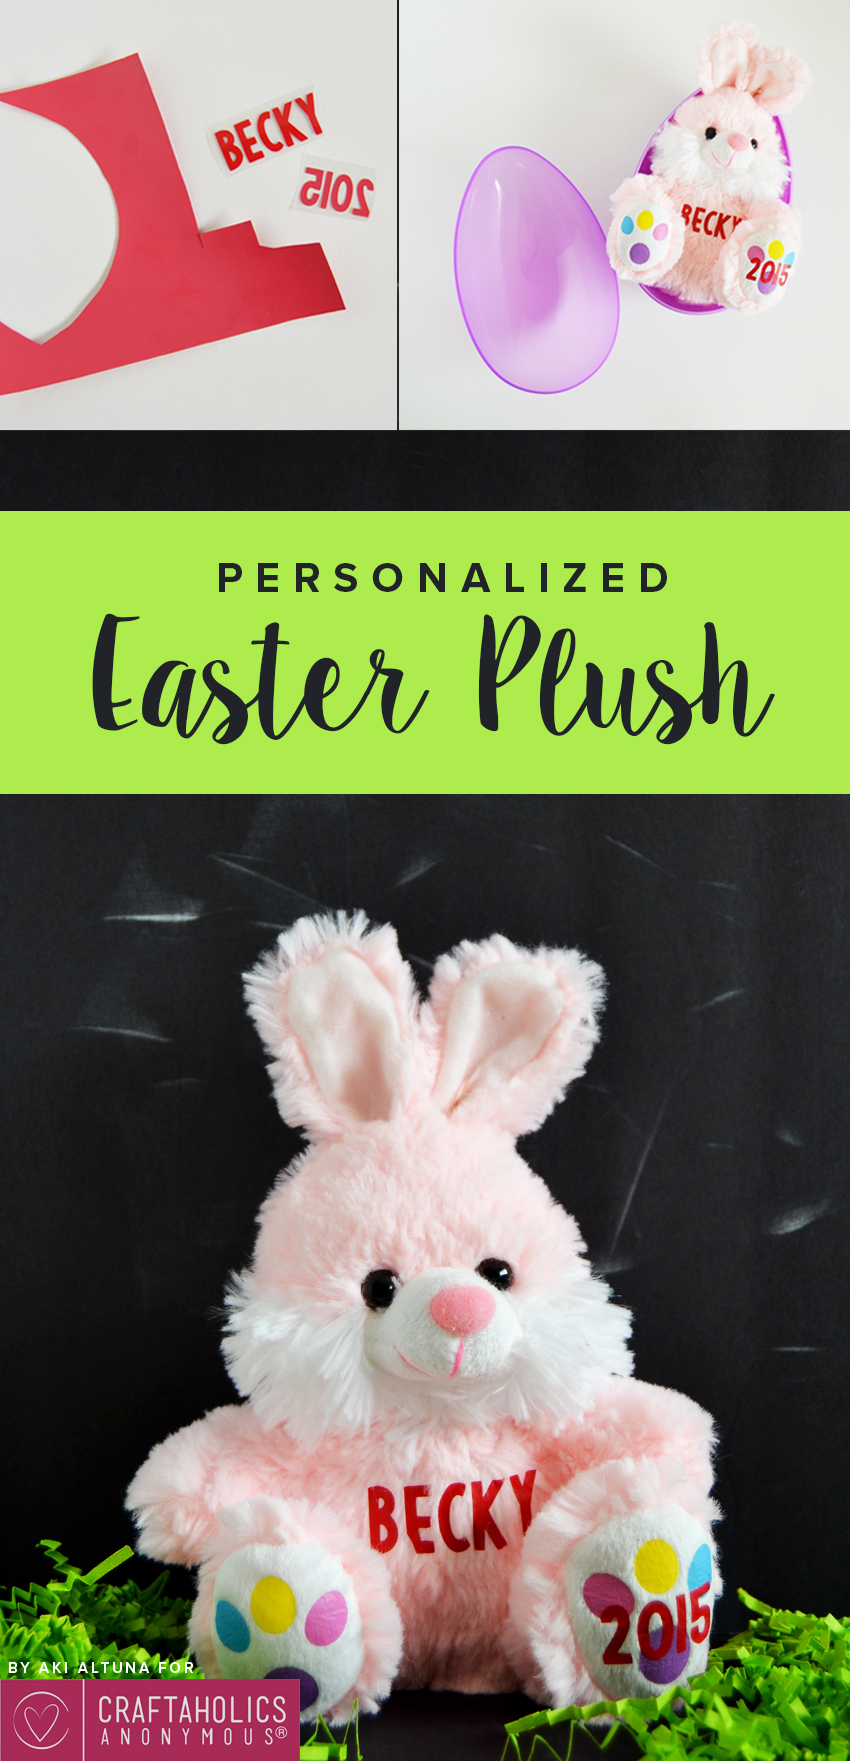 Dollar Store Easter Craft: How to personalize an Easter plush | Craftaholis Anonymous®